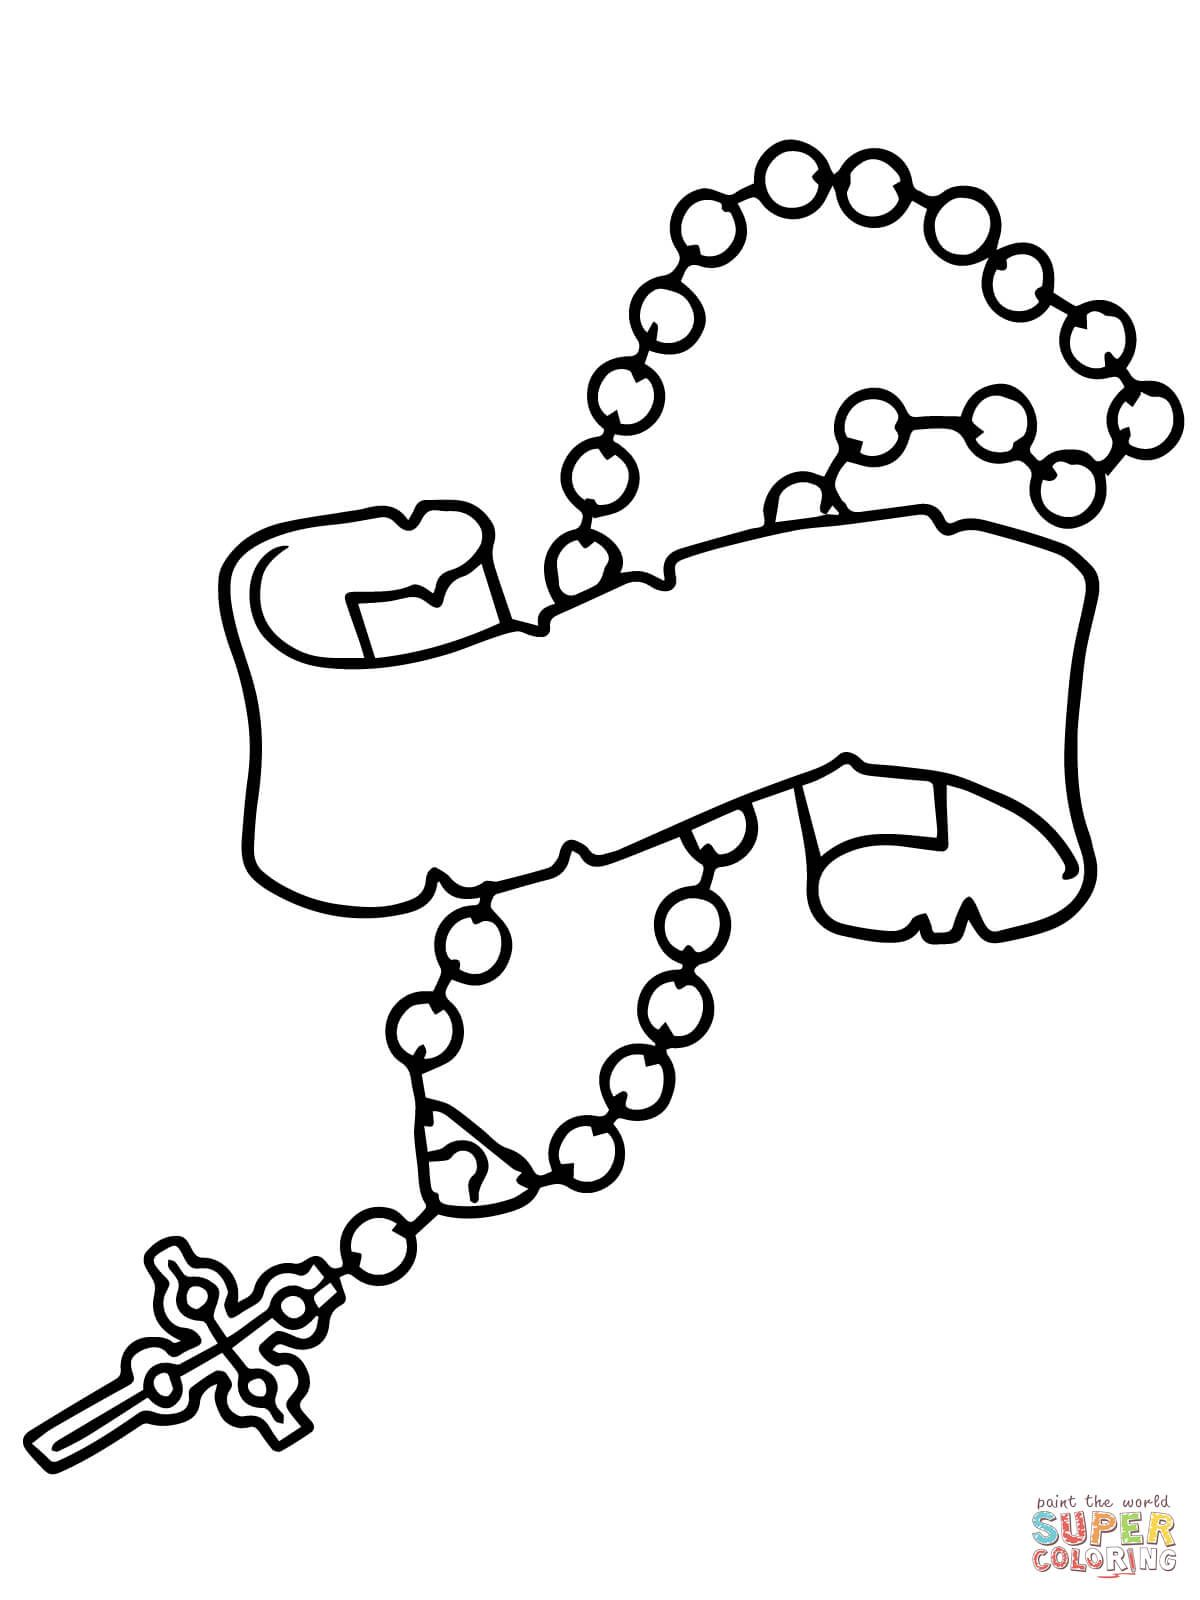 Rosary Coloring Pages Rosarybeadtattoo Tapete De Corpus Christi